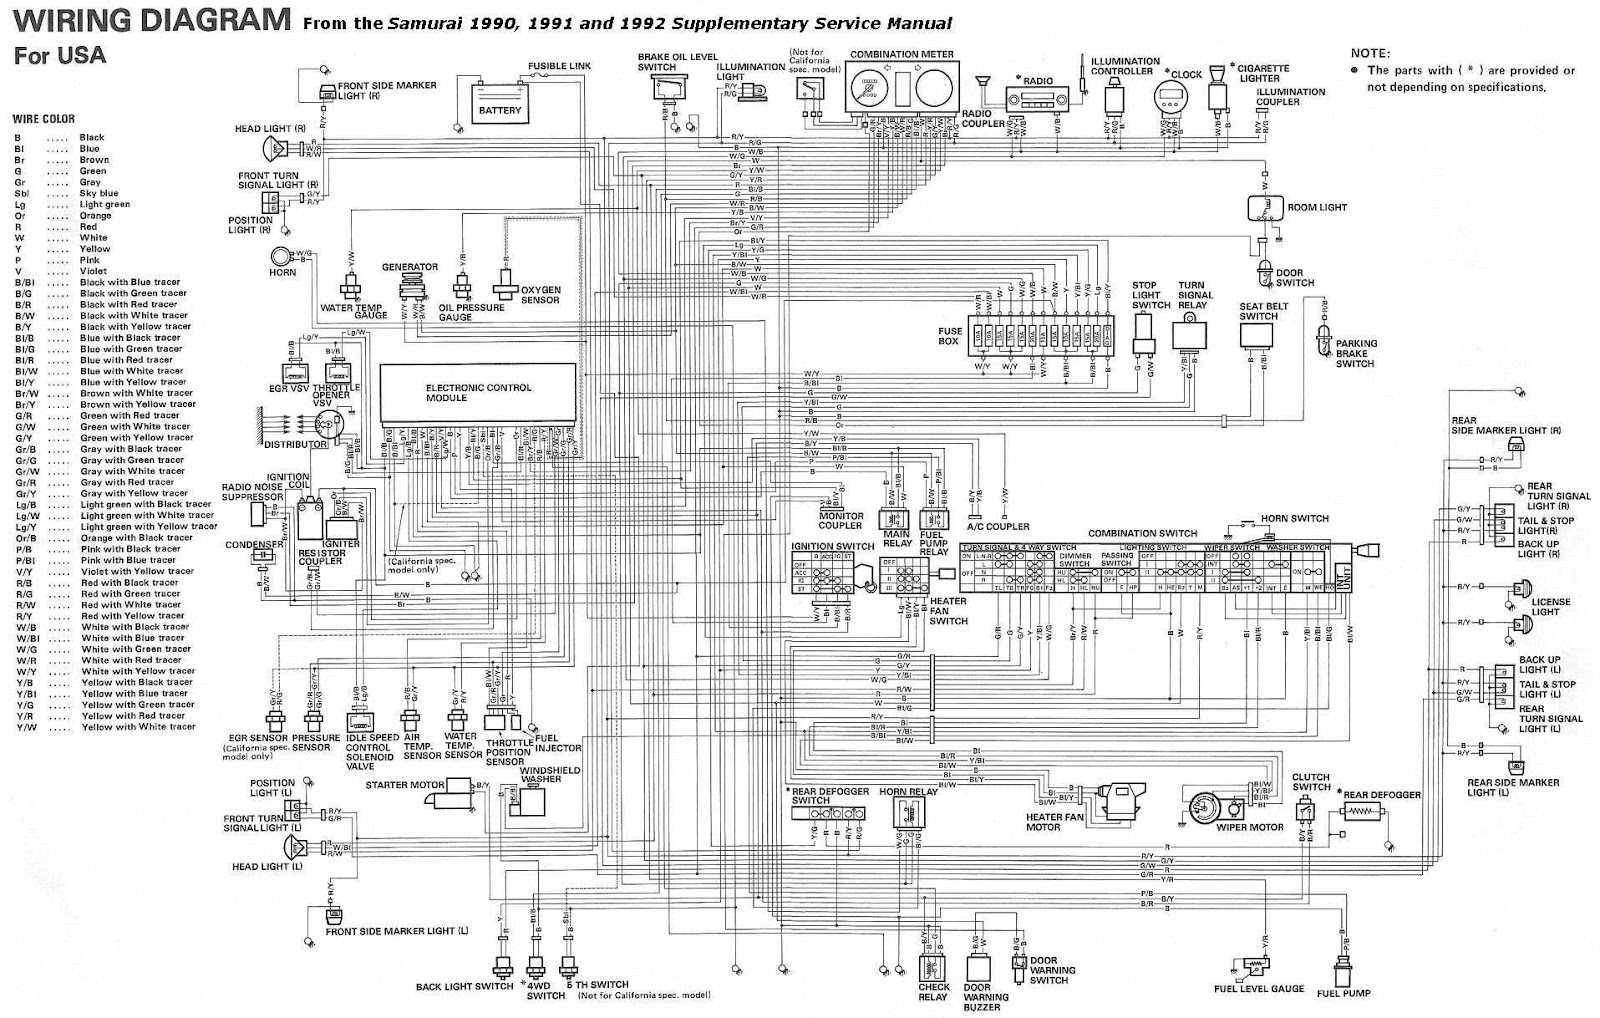 suzuki samurai wiring schematic wiring diagram todays 1994 suzuki swift lights stereo wiring diagram 1994 suzuki swift gti [ 1600 x 1018 Pixel ]